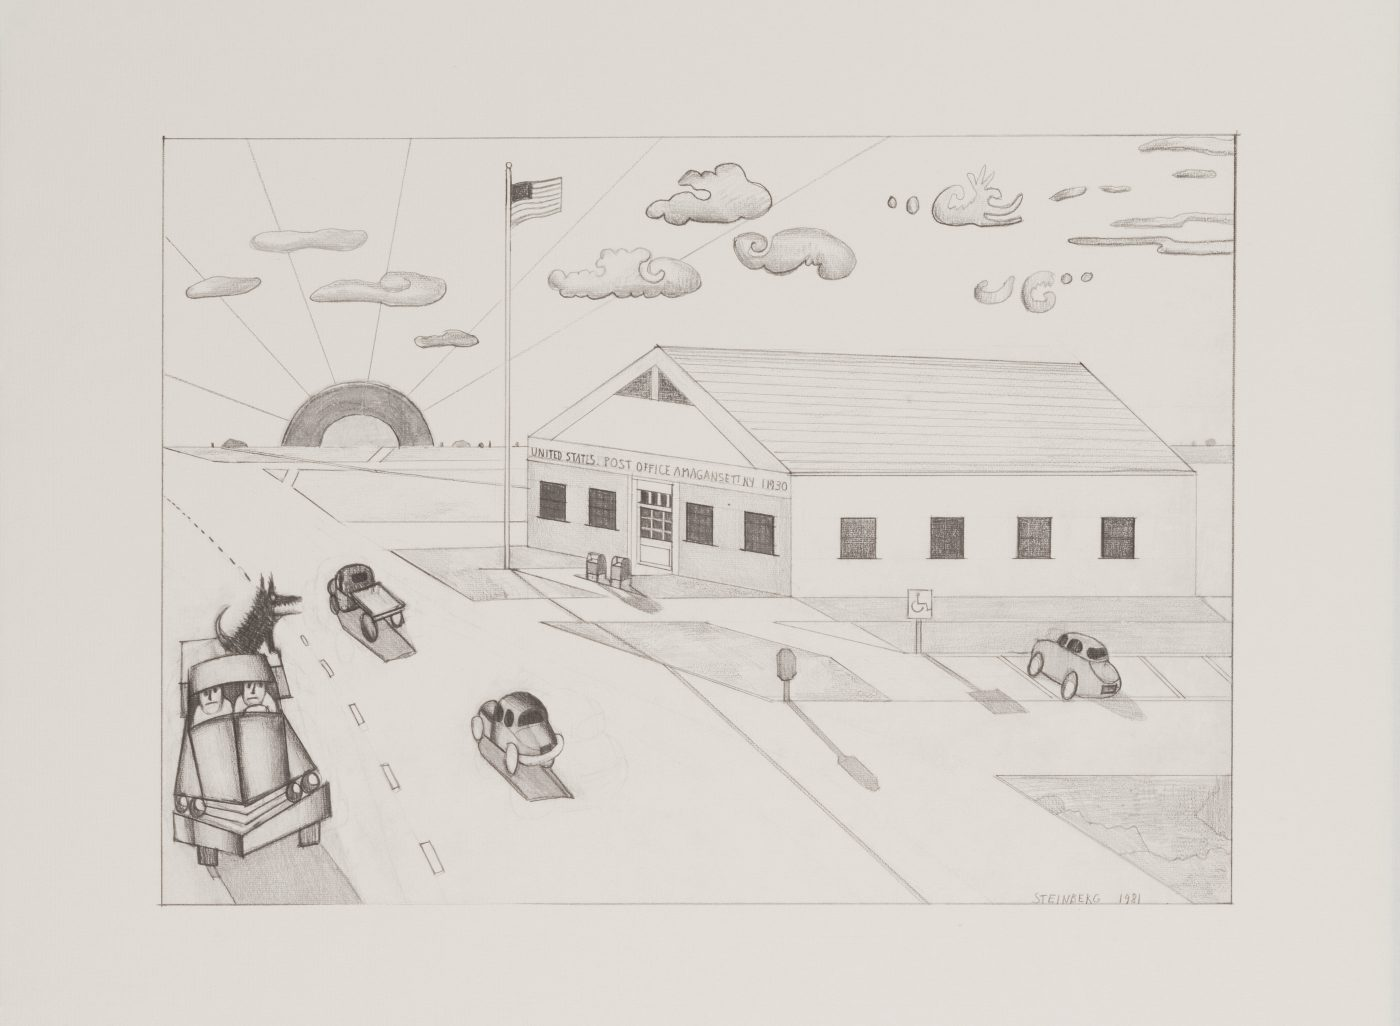 Saul Steinberg, Amagansett, post office